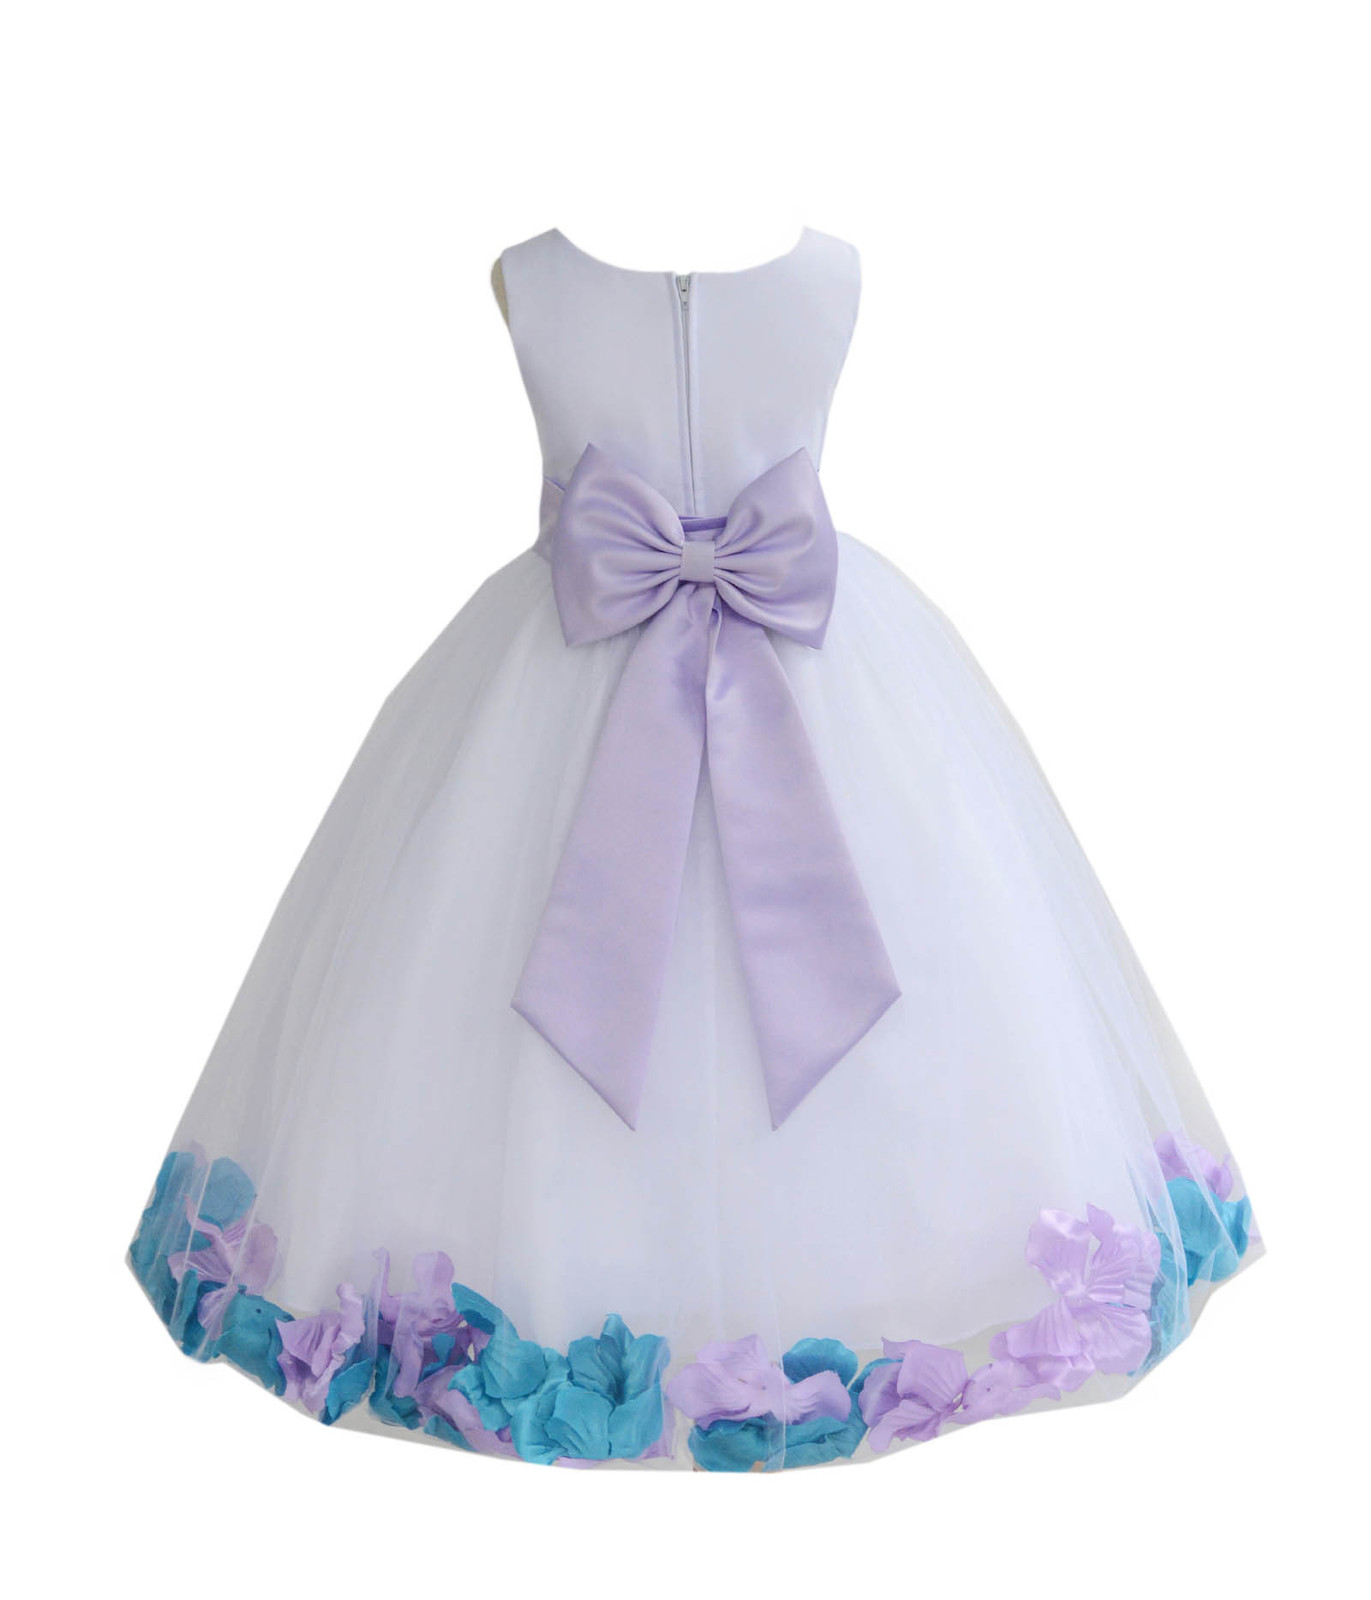 4442d0cbb White Mixed Petals Flower Girl Dress Elegant and similar items